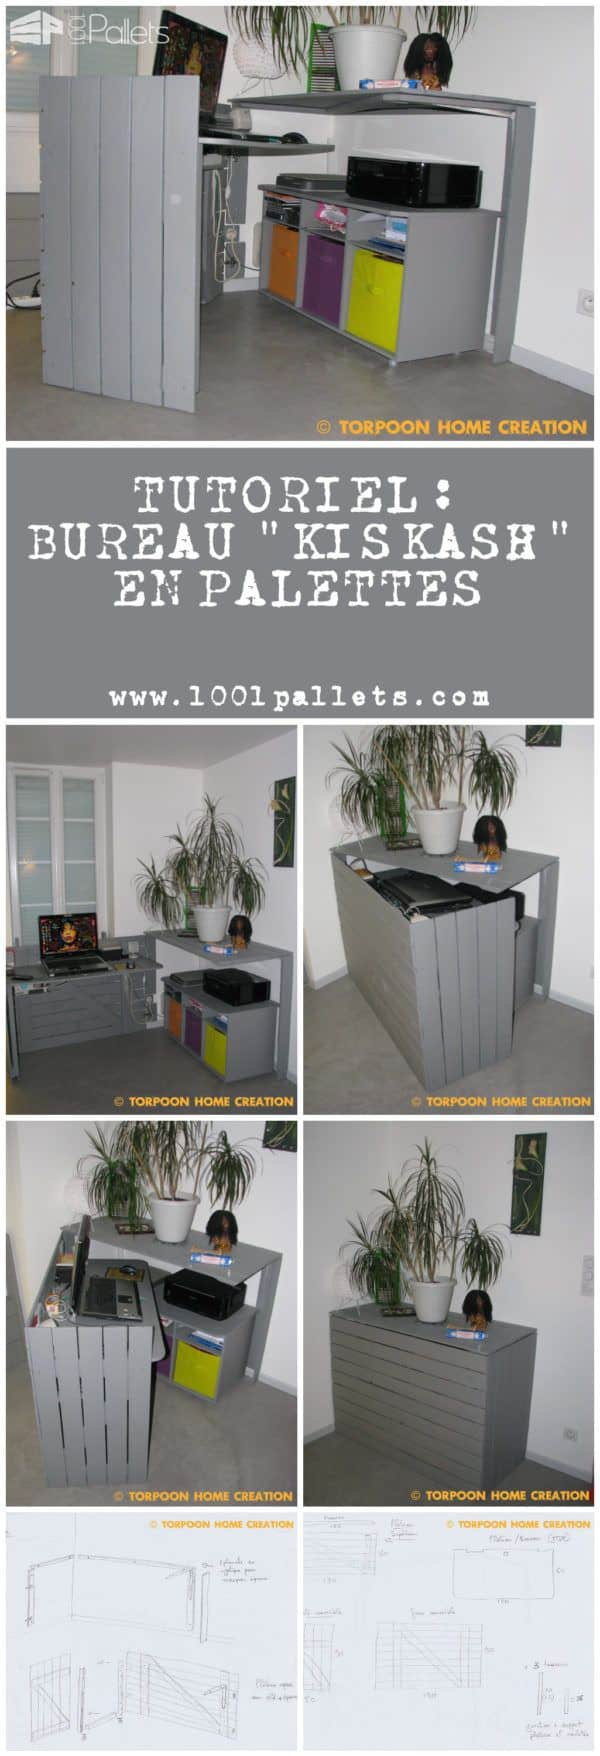 Tutoriel: Bureau Kiskash En Palettes (Pdf) Pallet Desks & Pallet Tables Step-By-Step Printable Pallet PDF Tutorials